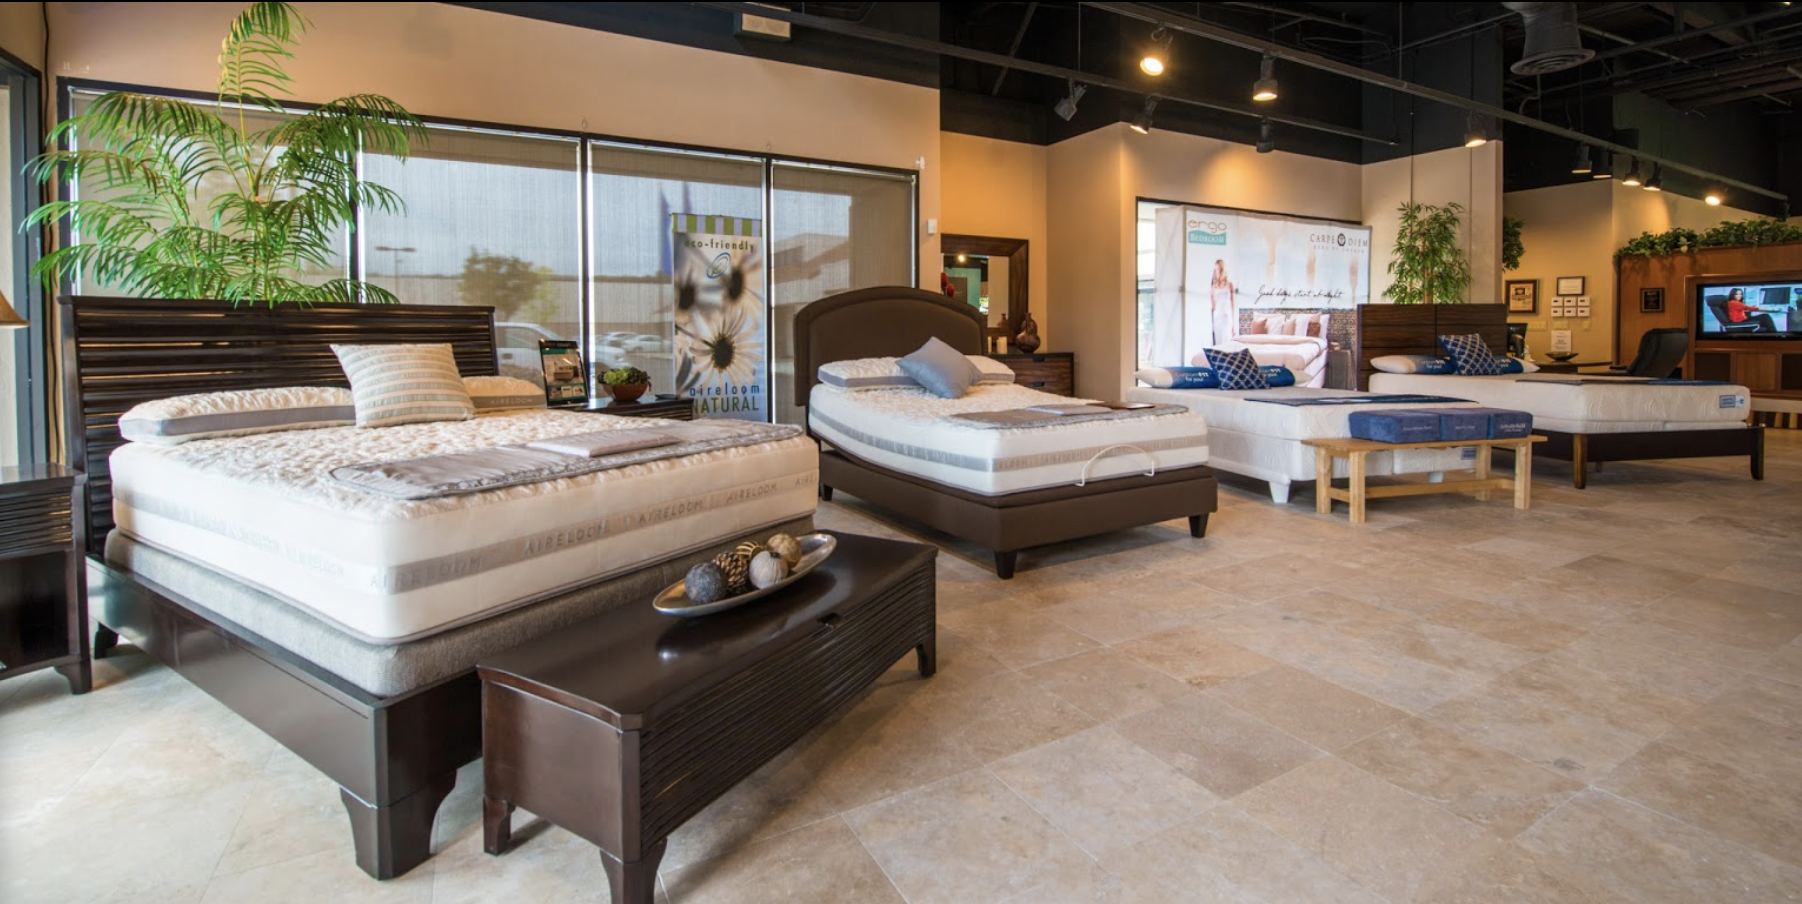 Ergo Beds – Natural Talalay Latex Mattress Store In Las Vegas Nv